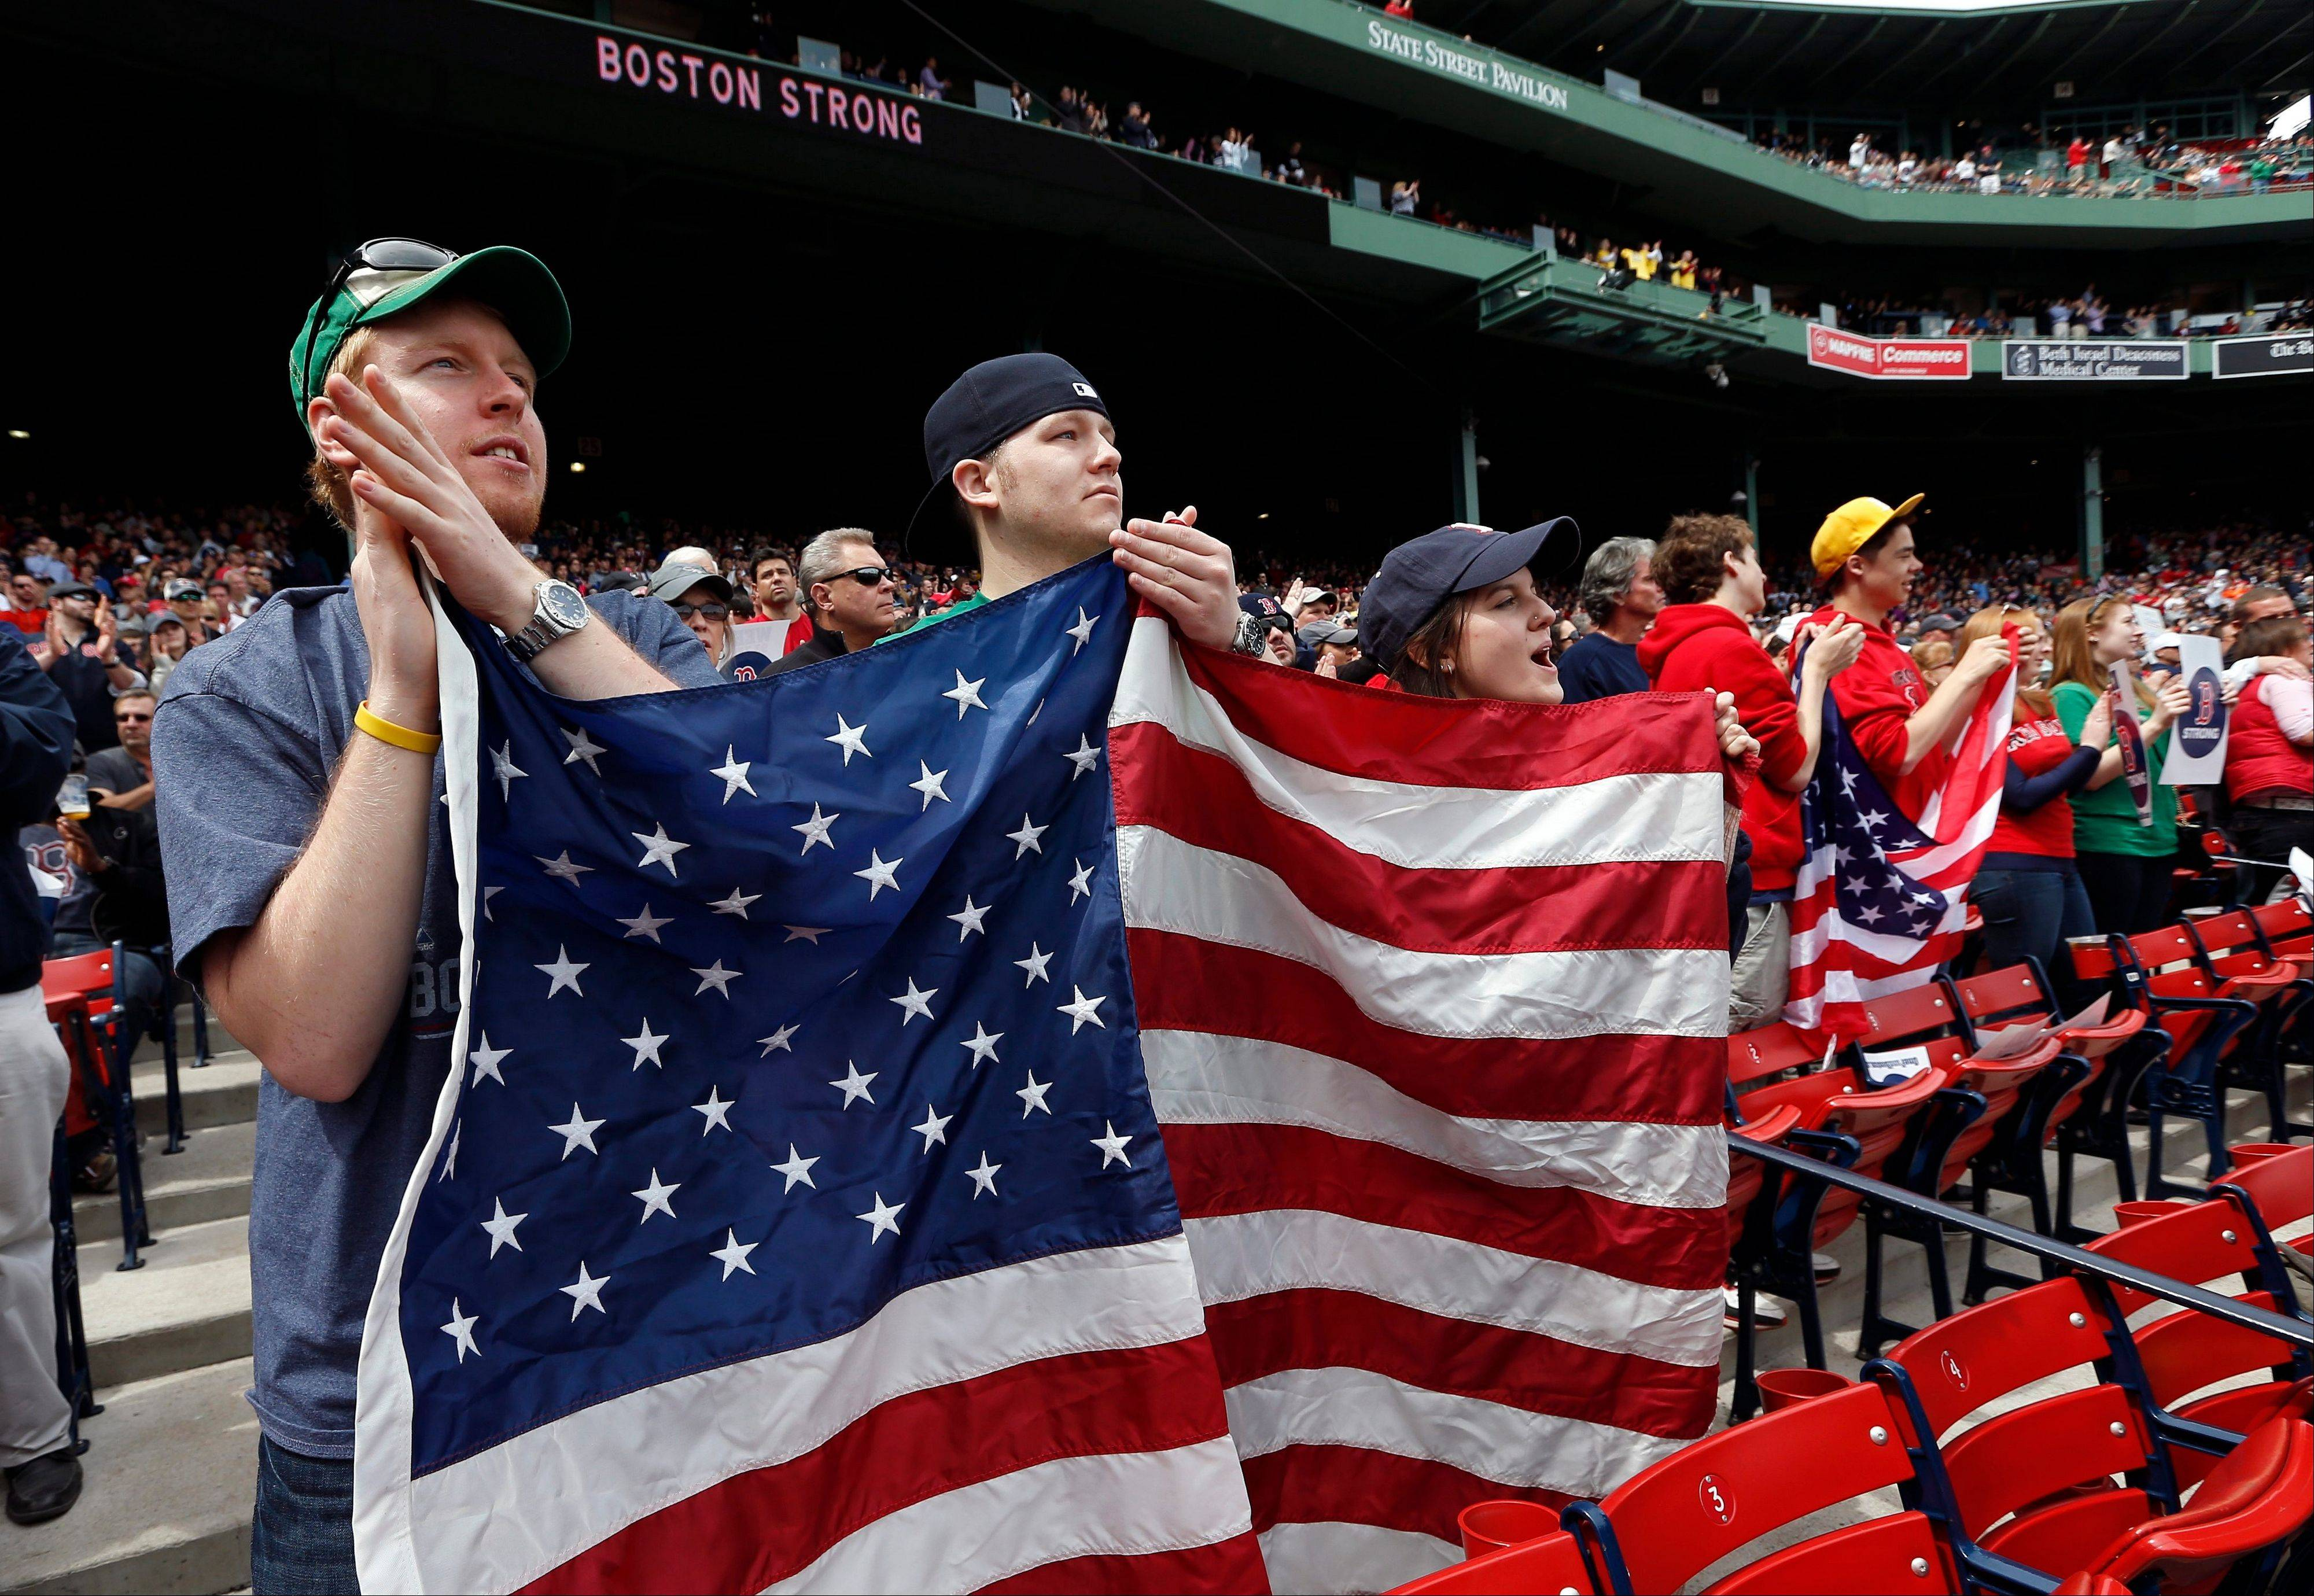 Fans hold an American flag during ceremonies in tribute of victims and first responders to the Boston Marathon bombings before a baseball game between the Boston Red Sox and the Kansas City Royals in Boston, Saturday, April 20, 2013.